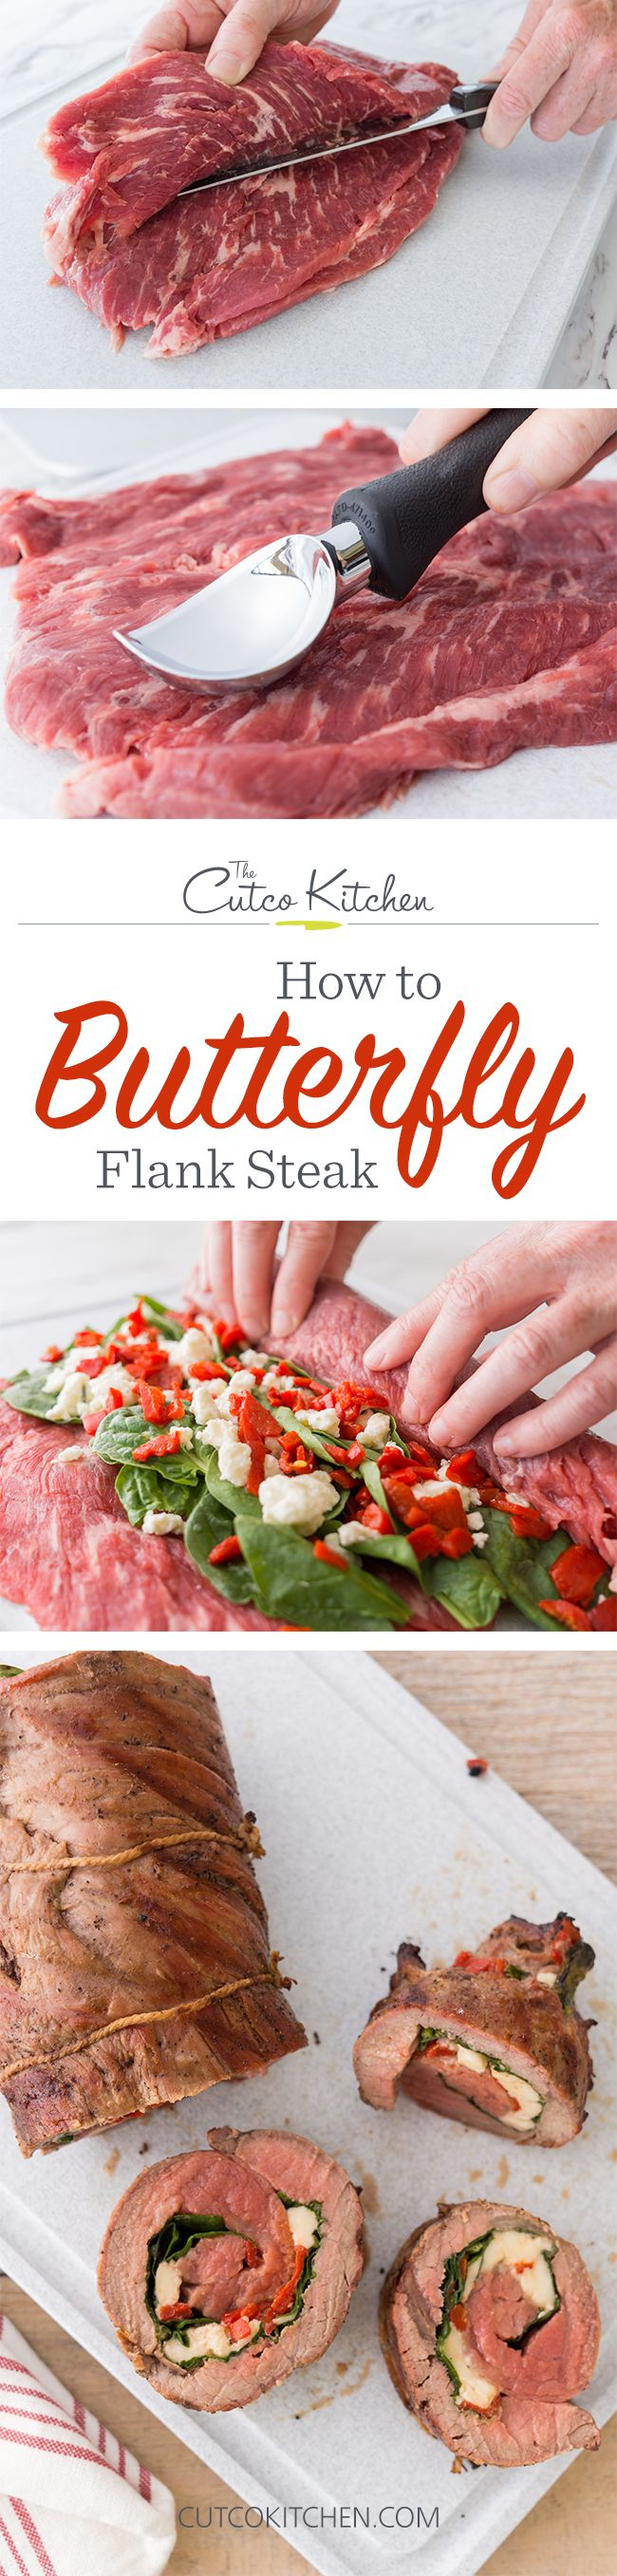 How to Butterfly Flank Steak for Stuffing I Use a Cutco Boning Knife to help you prep a recipe that's perfect for the July 4th holiday I Cutco Kitchen